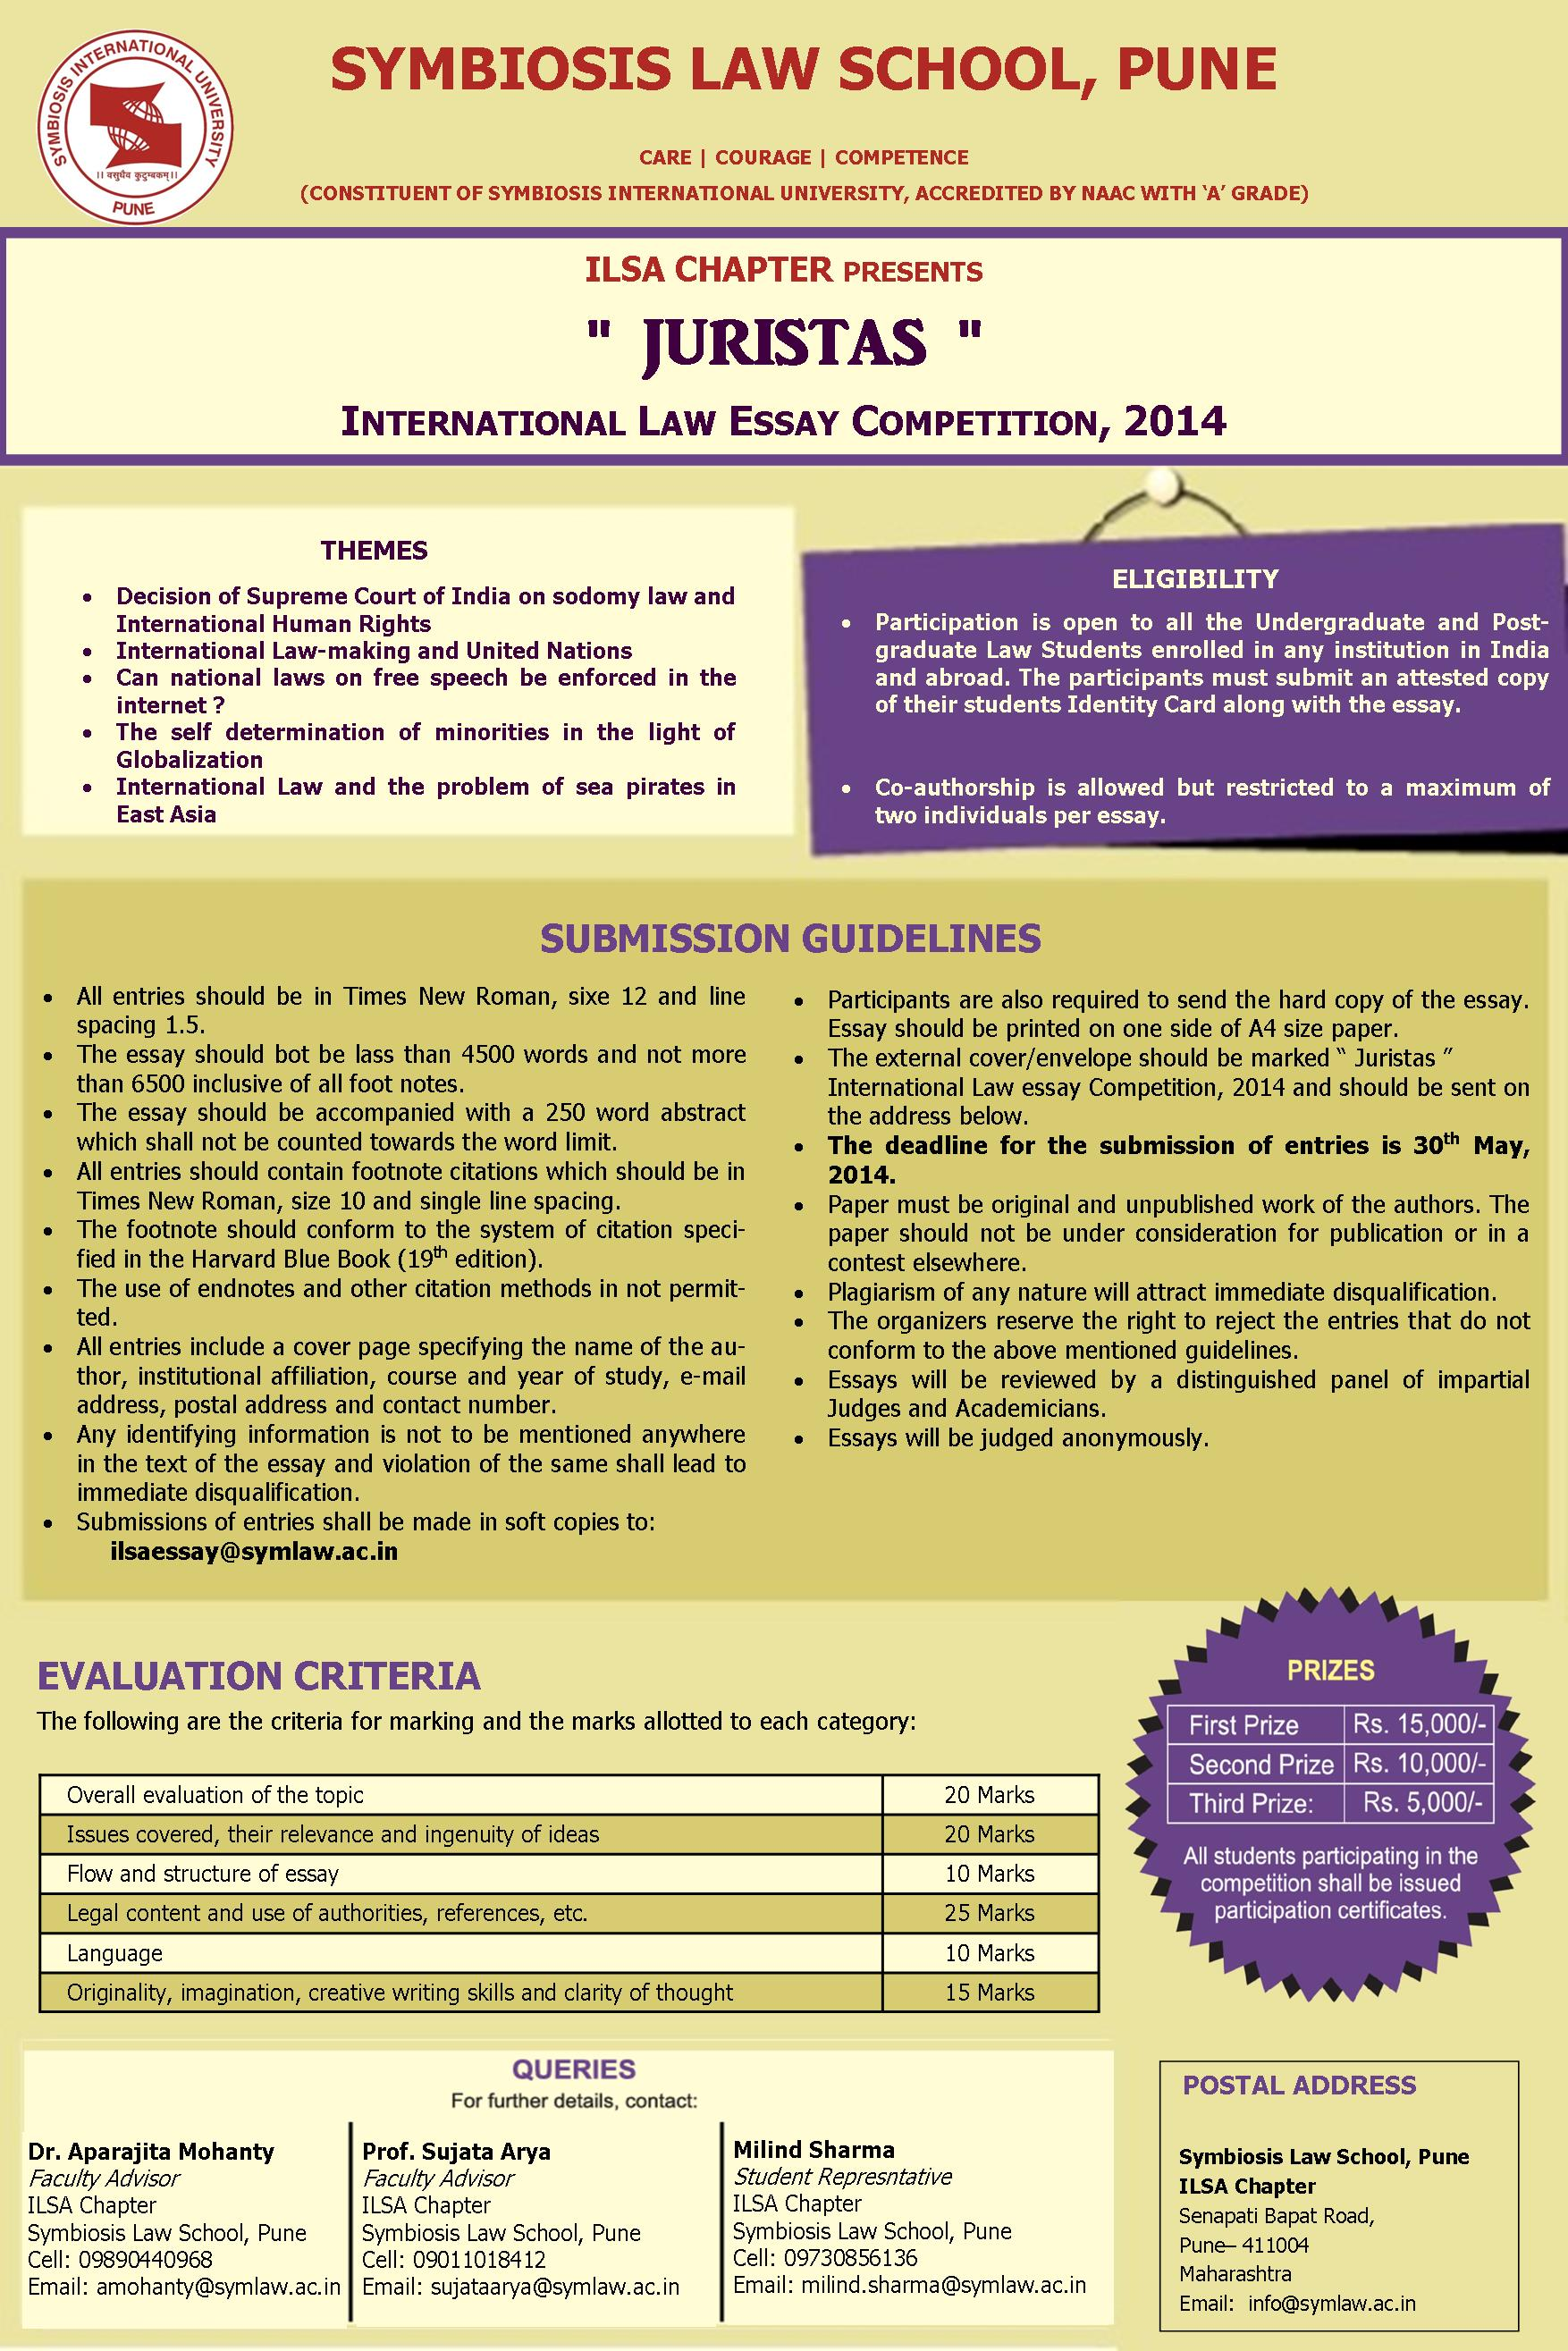 essay on united nations essay writing on library library essay  sls pune ilsa chapter s international law essay competition juristas symbiosis pune ils chapter international law